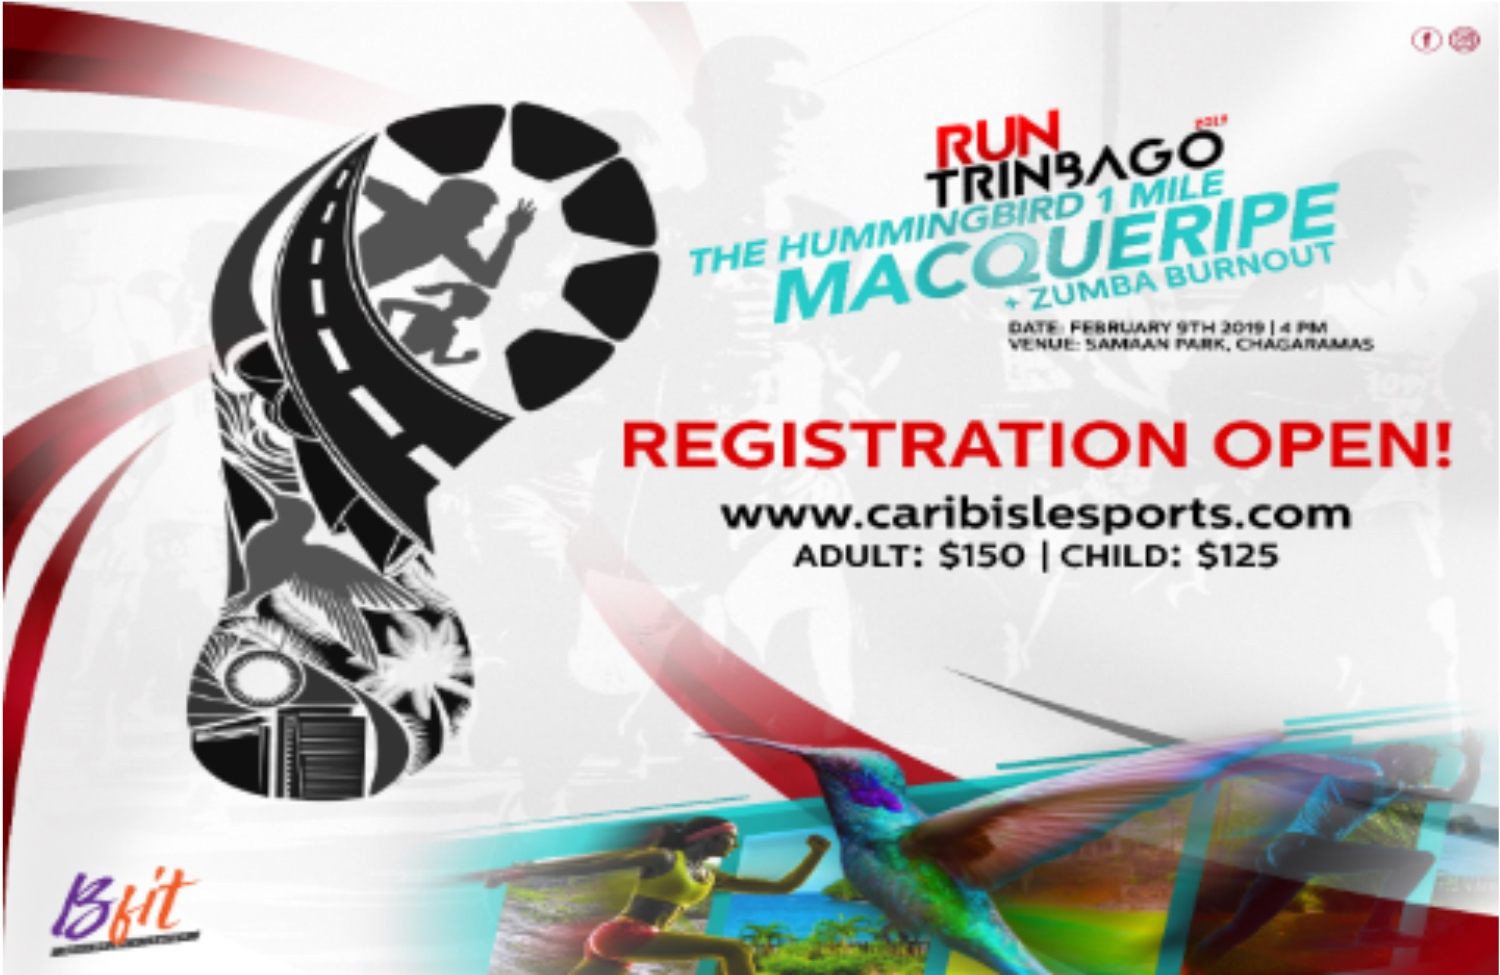 T&T's Biggest Health Initiative is finally here!  RUN TRINBAGO